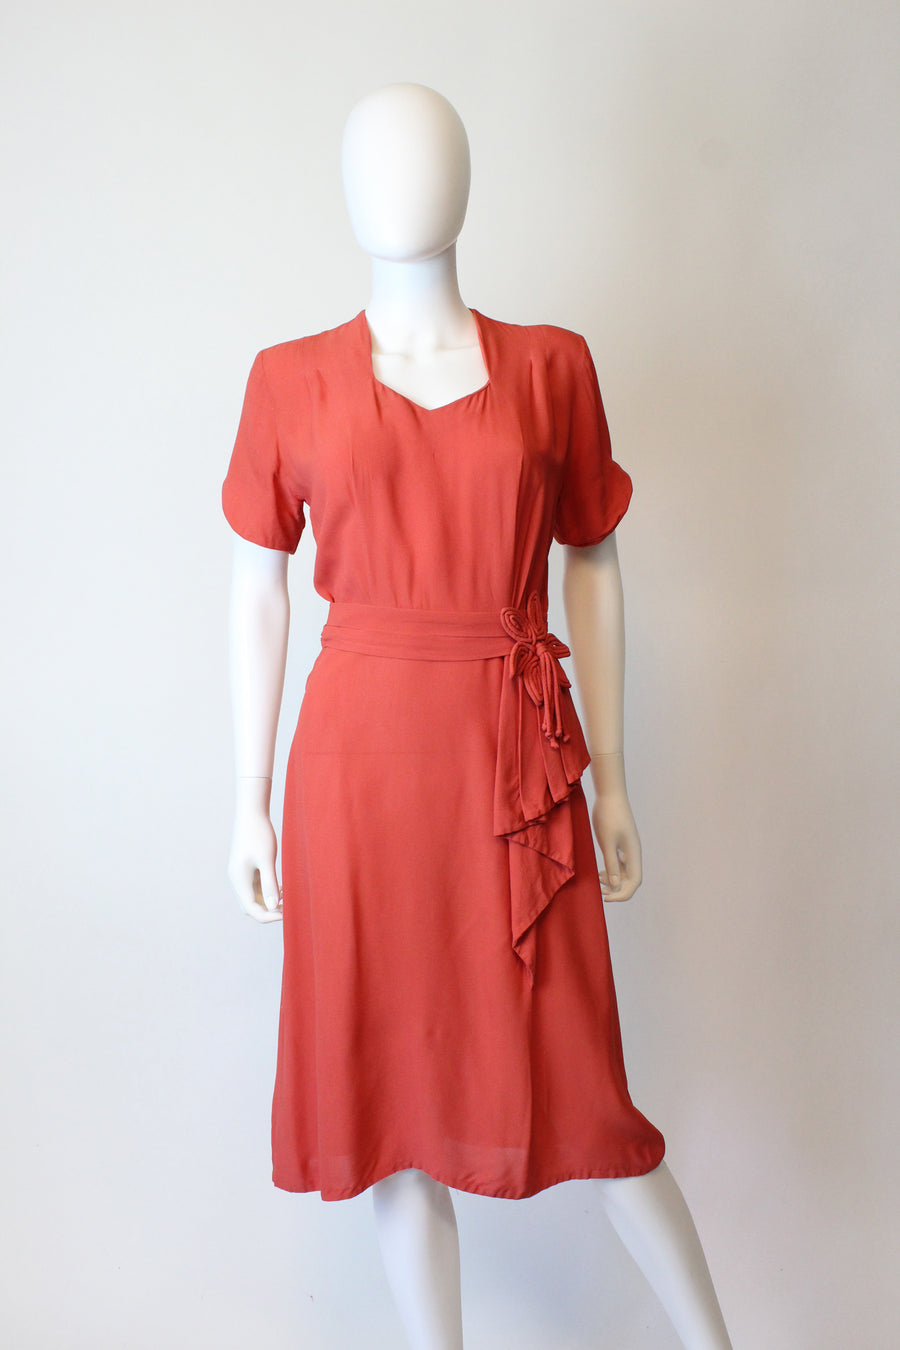 1940s coral rayon dress small | vintage tassel dress | new in